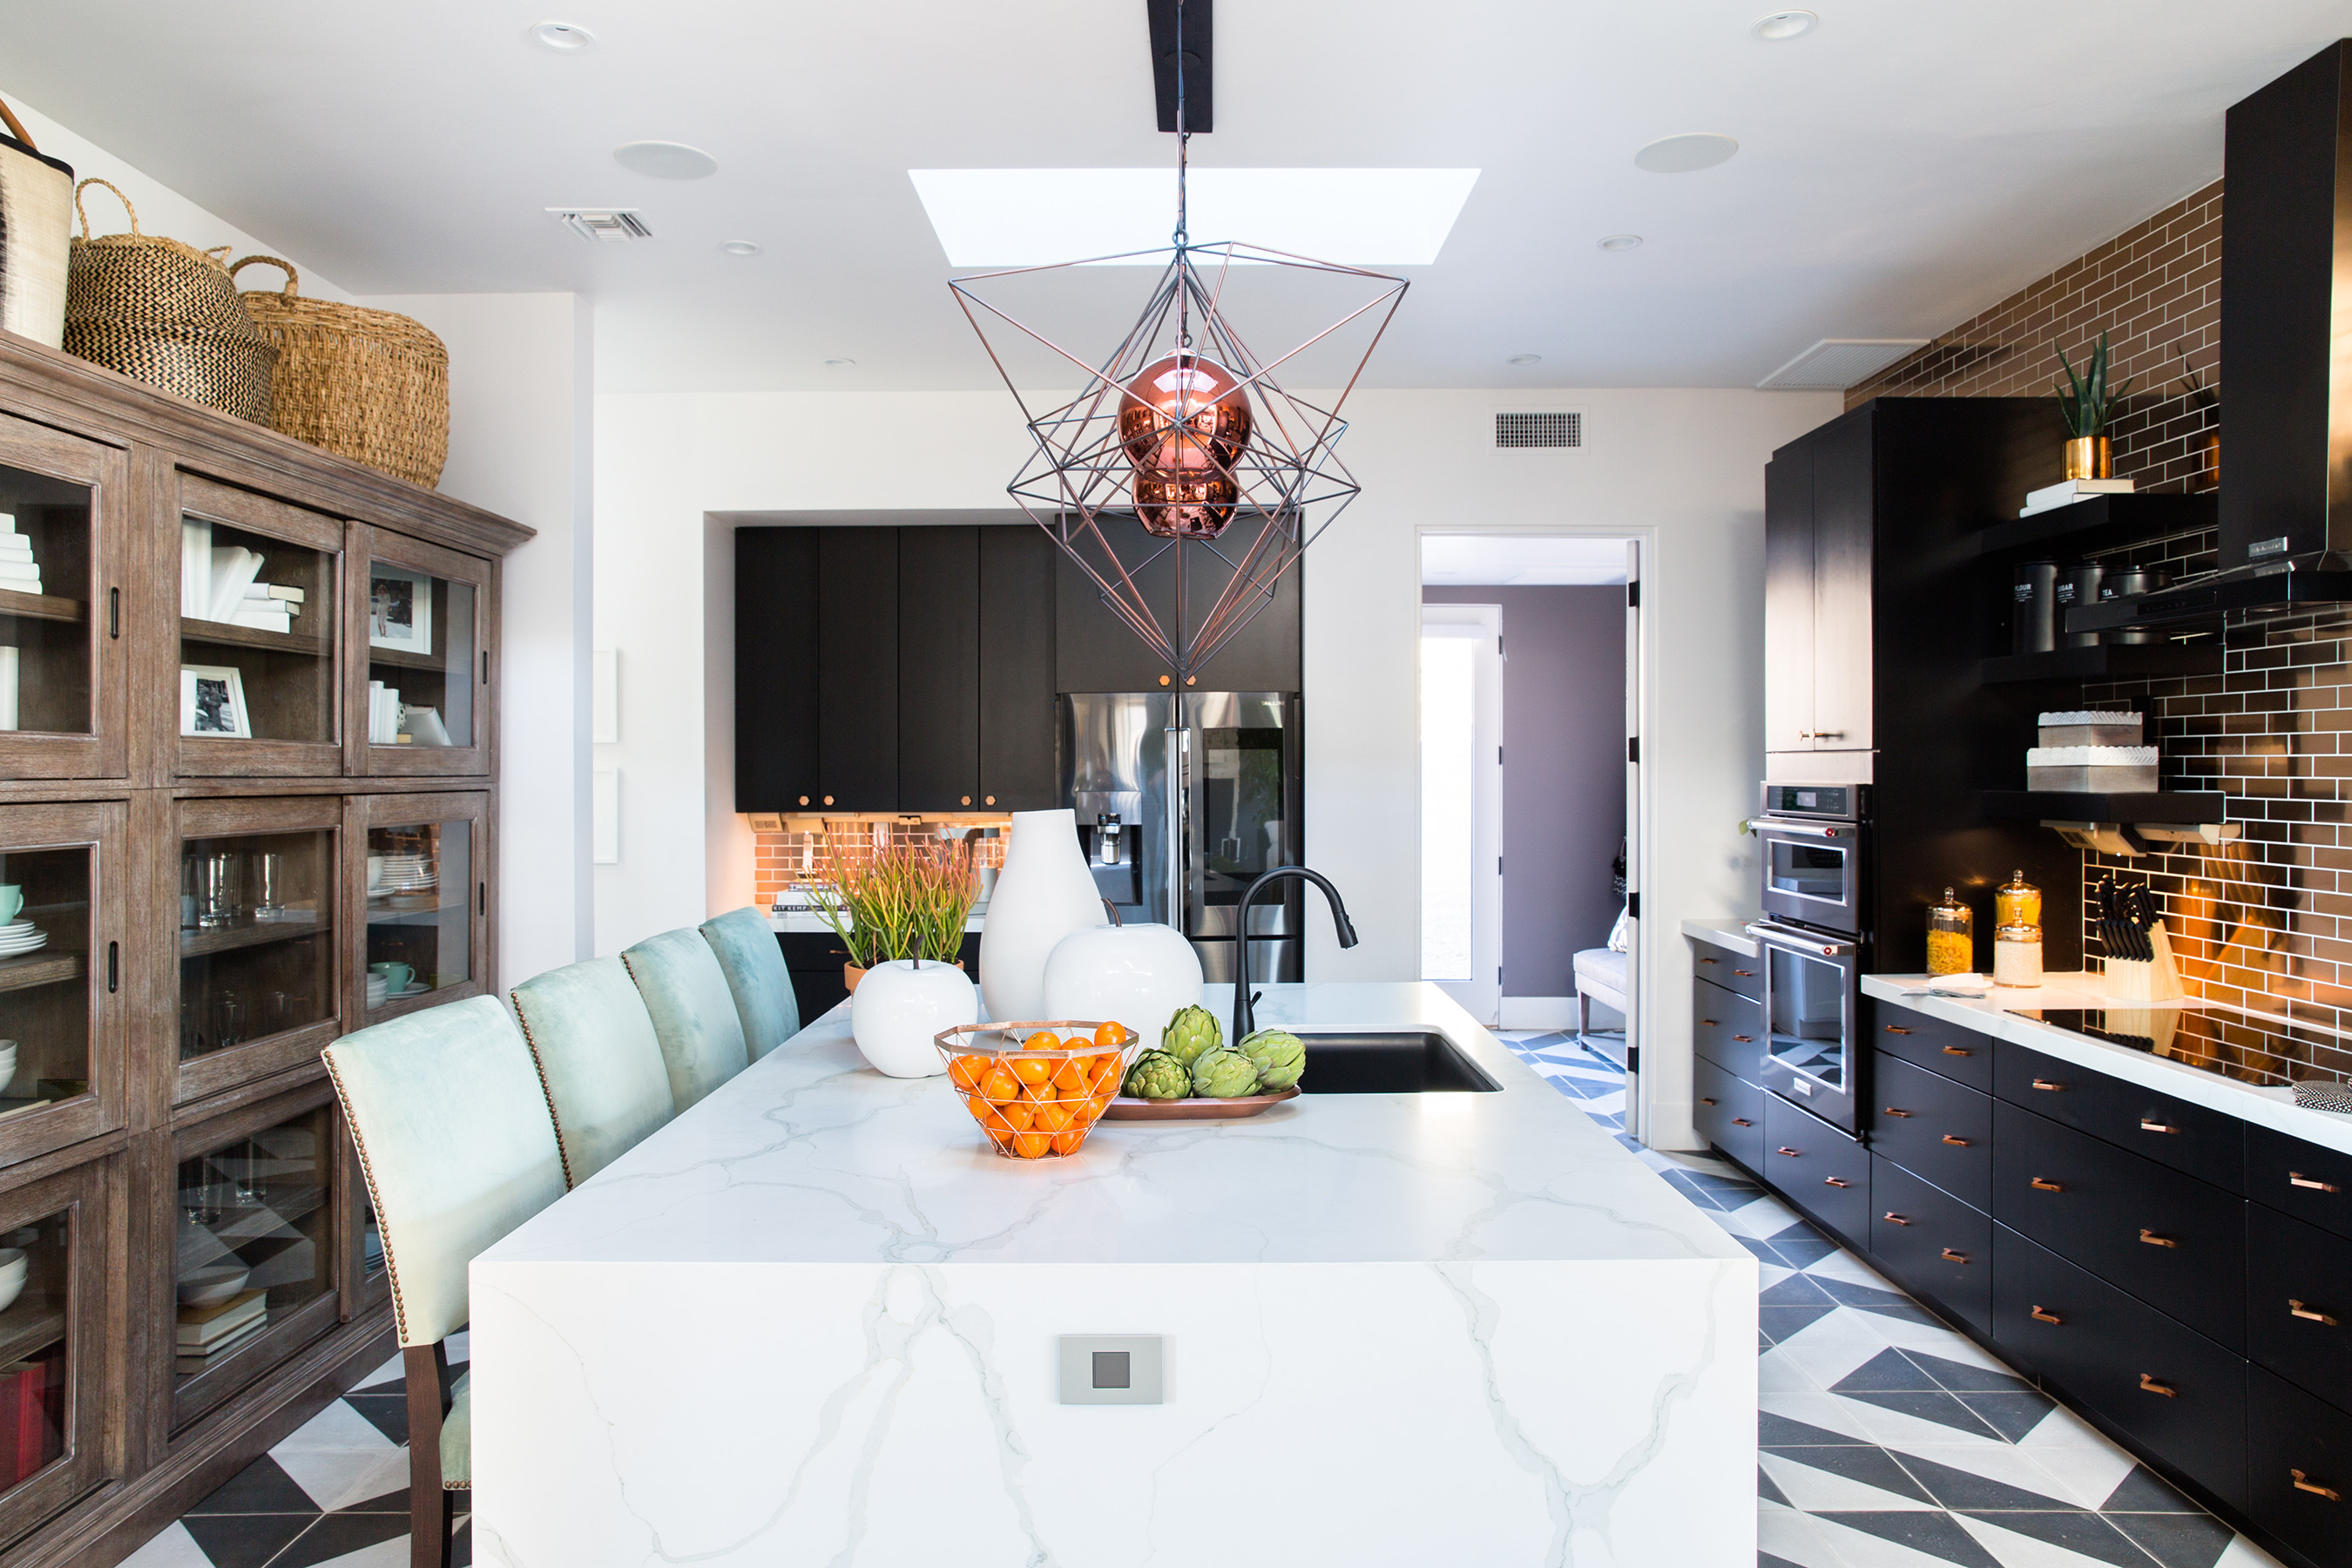 In the bold, do-everything kitchen of the HGTV Smart Home 2017, there's no shortage of style or amenities. Centered by a huge waterfall quartz island, the floors are covered in geometric tile, the walls are dressed in bling-y copper and a suite of high-tech appliances make cooking and prepping a snap.